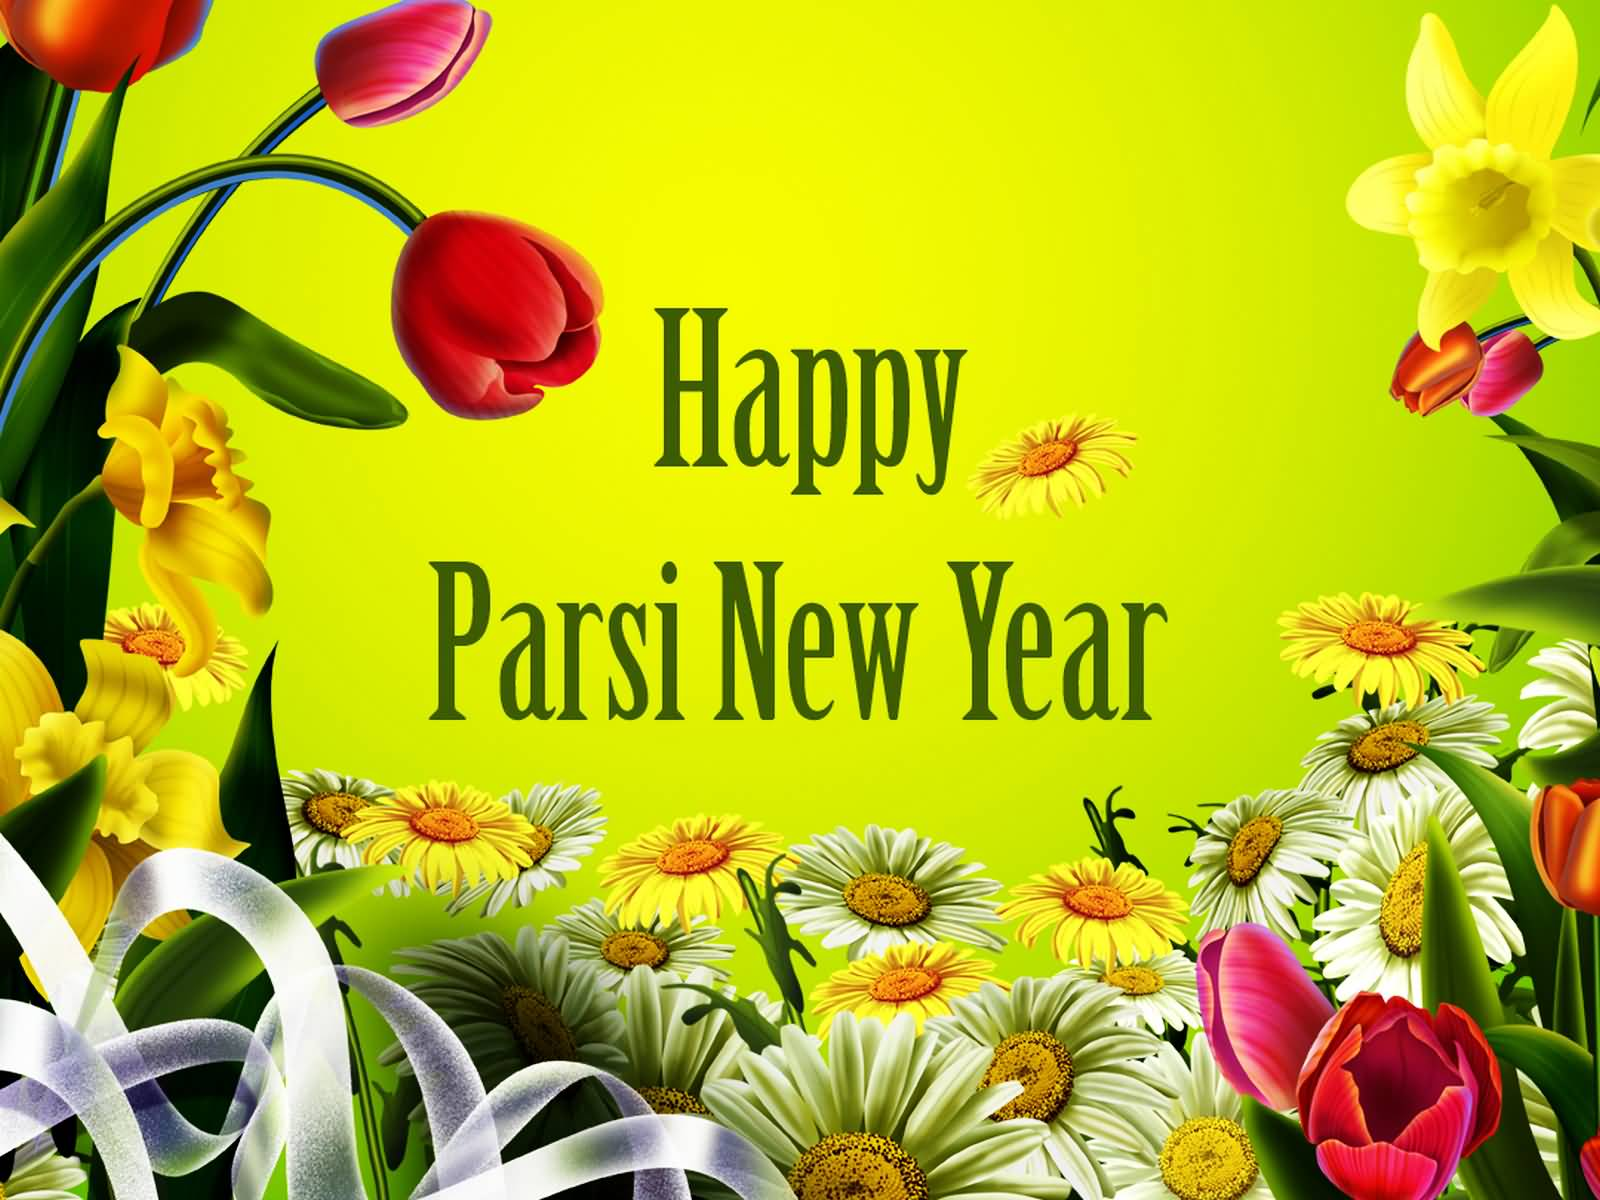 Happy Parsi New Year Flowers Picture